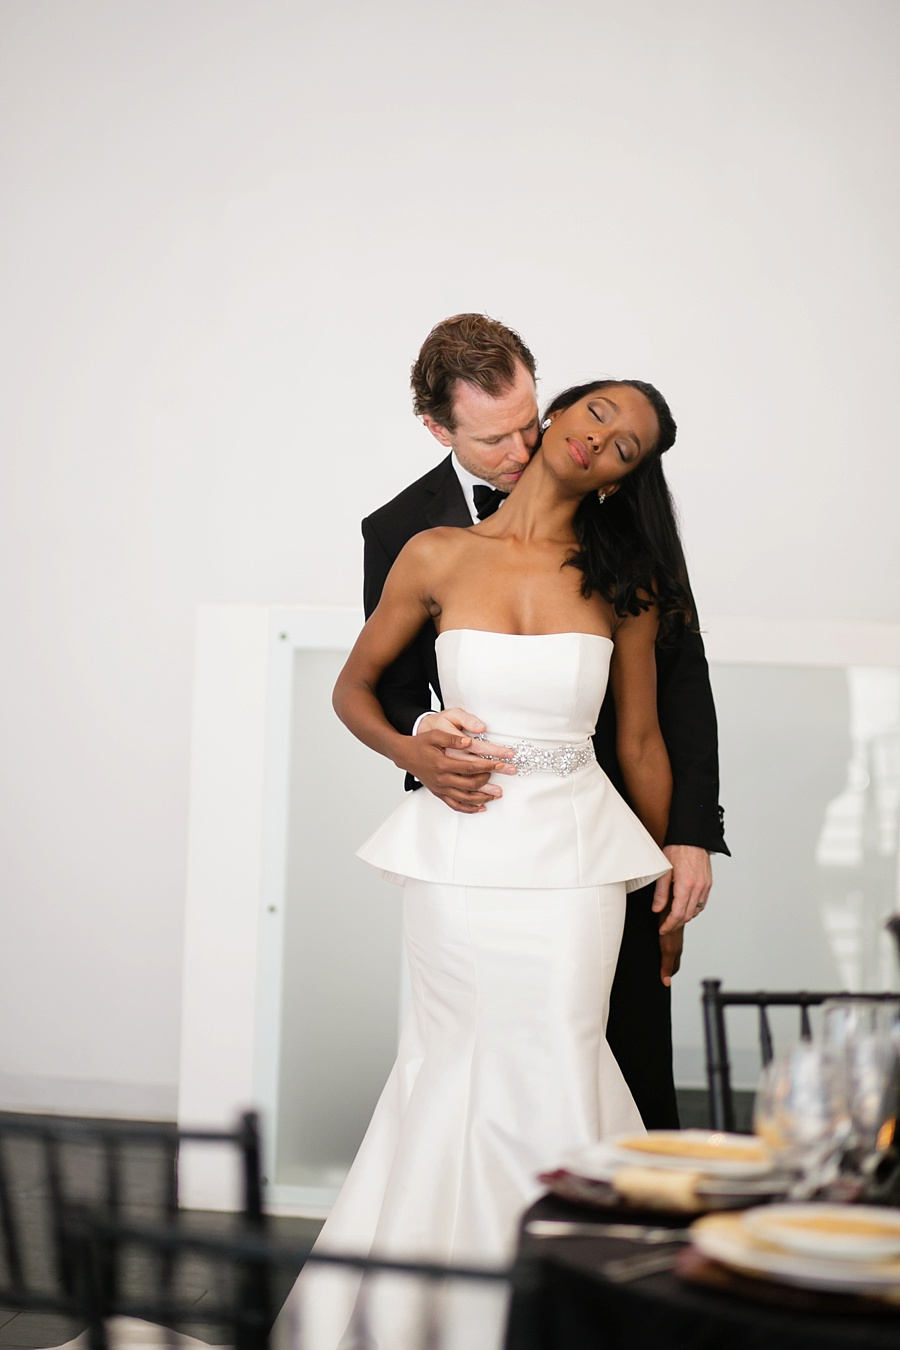 A SCANDAL Wedding: Olivia Pope marries Fitzgerald Grant ...